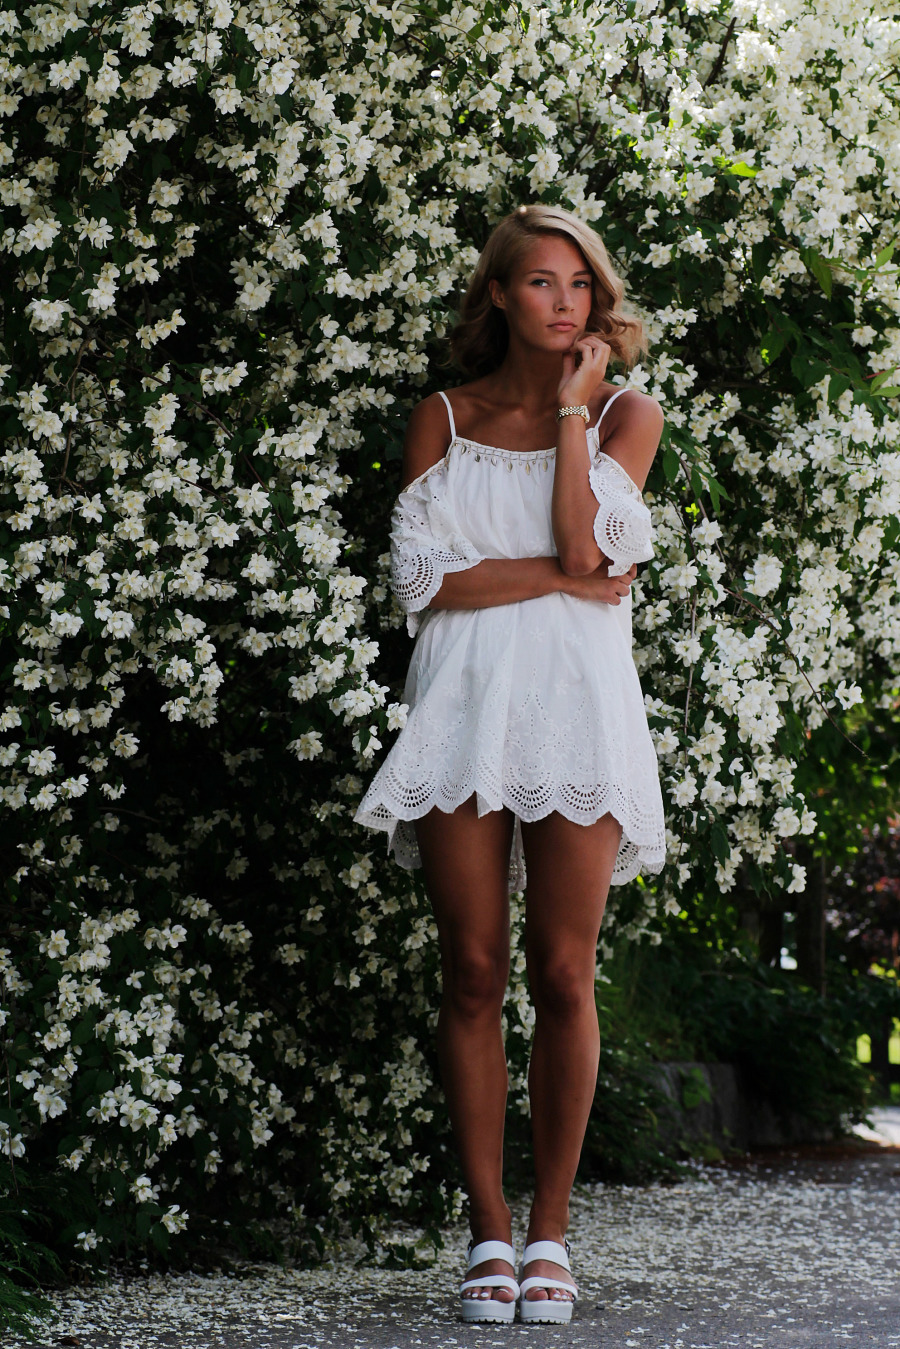 Petra Karlsson is wearing a white crochet trimmed dress from Sheinside and the shoes are from Chicwish